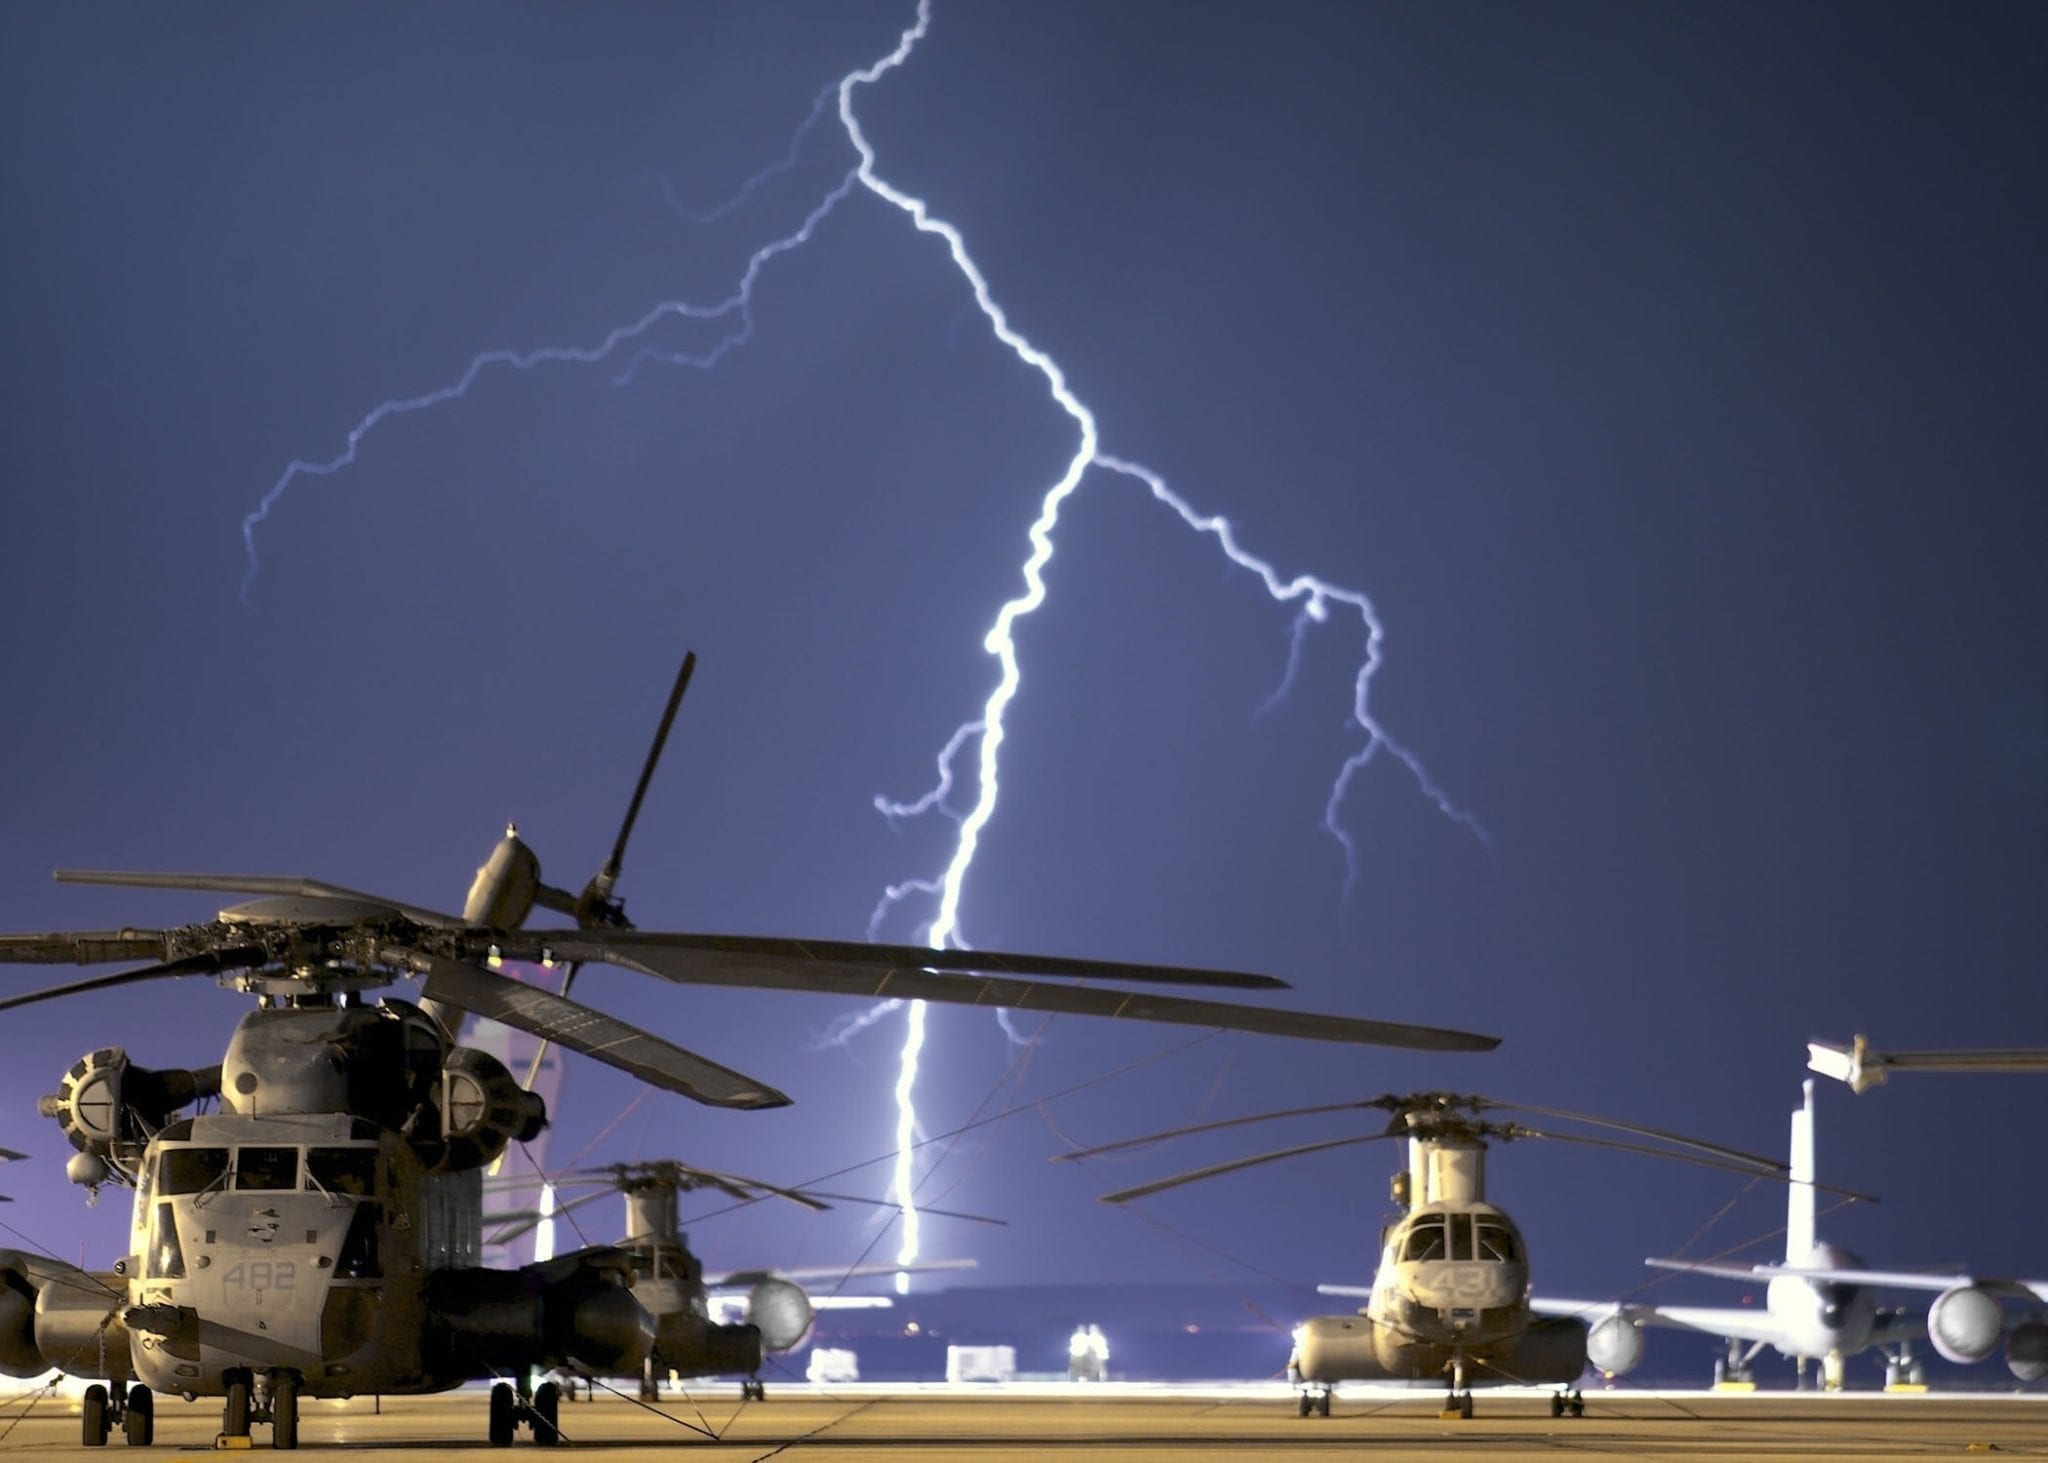 A base that uses lightning protection for military facilities.